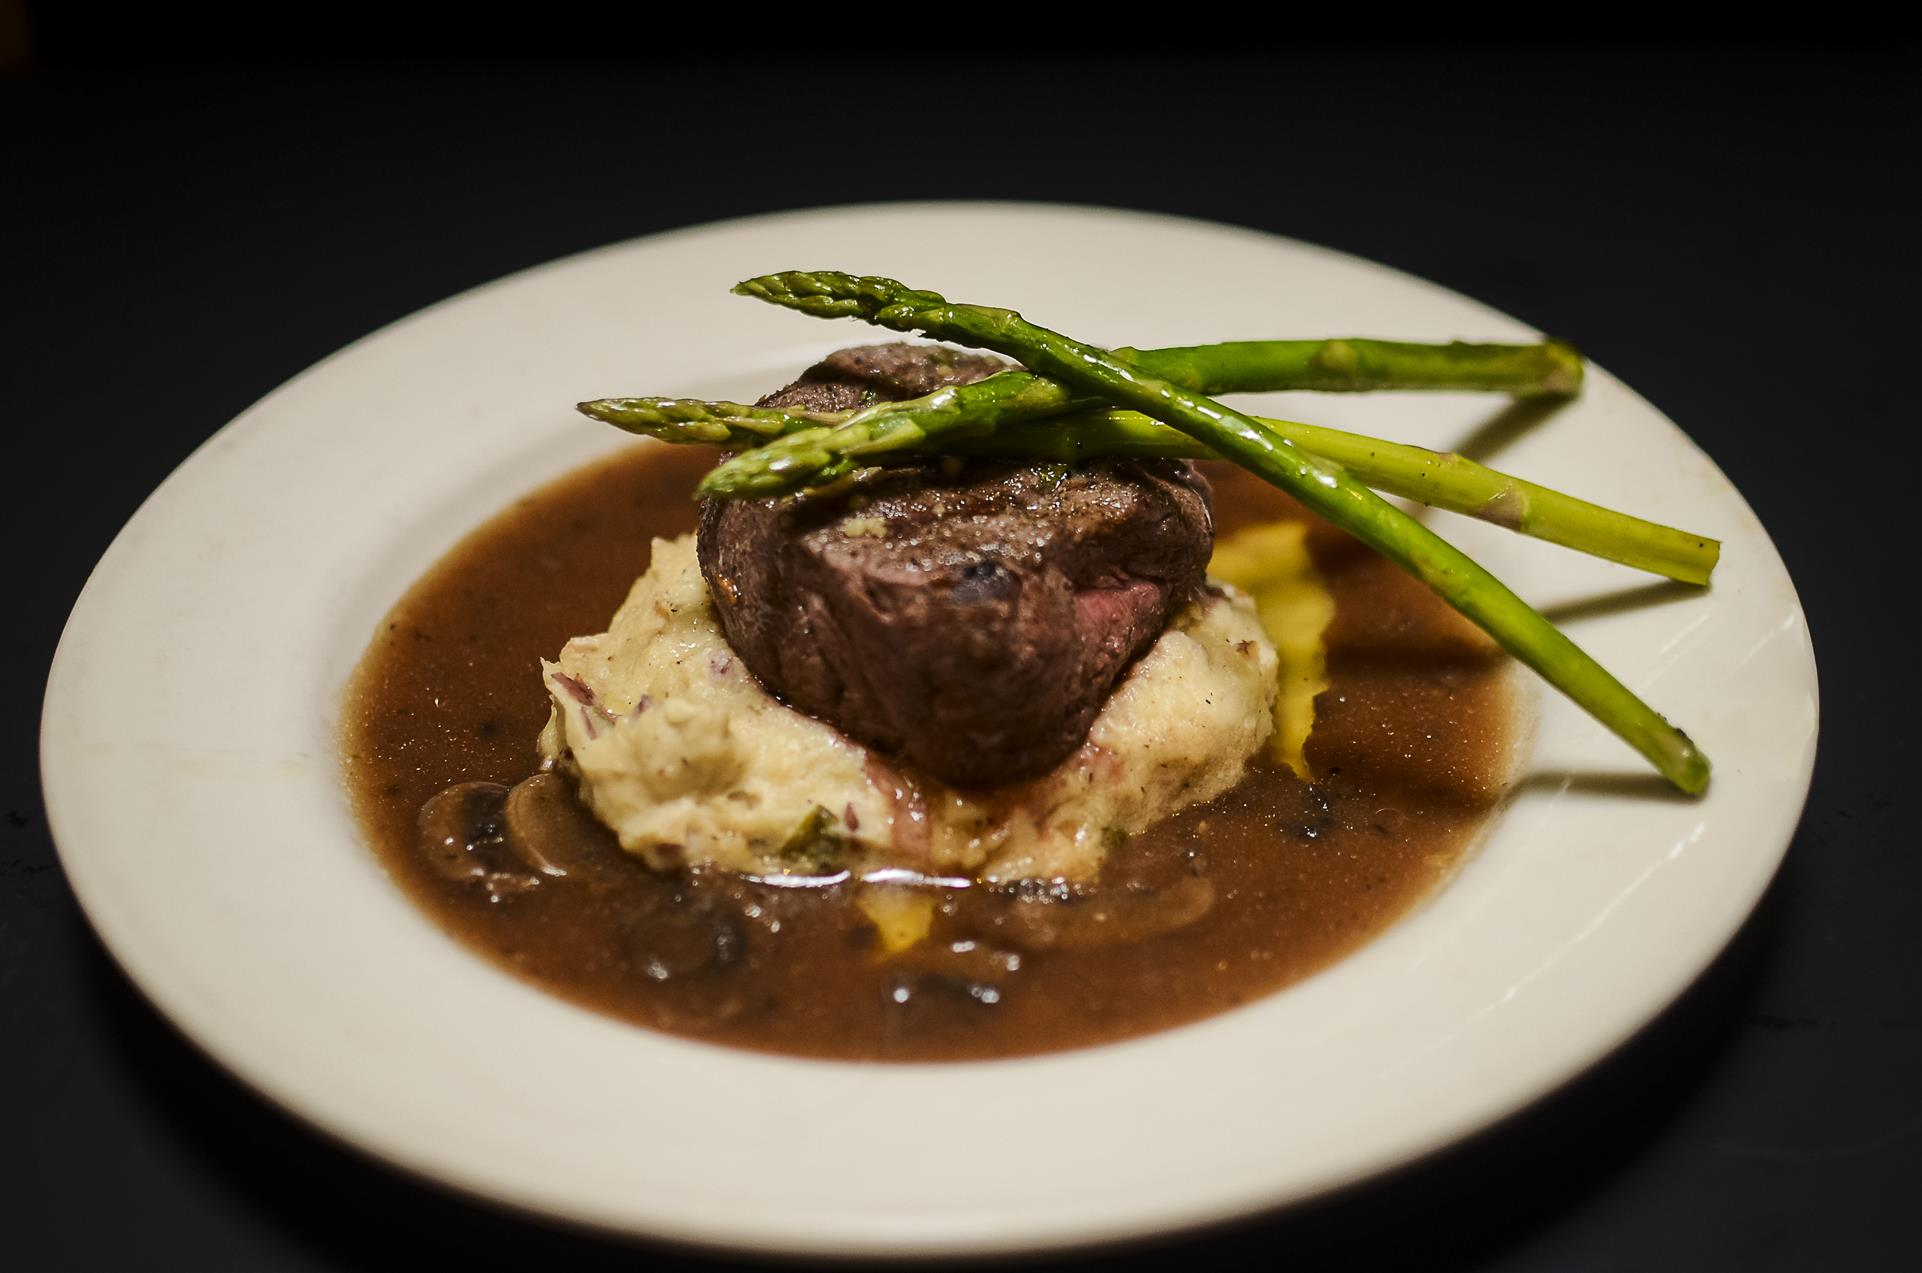 Filet mignon with asparagus and mashed potatoes over a mushroom gravy